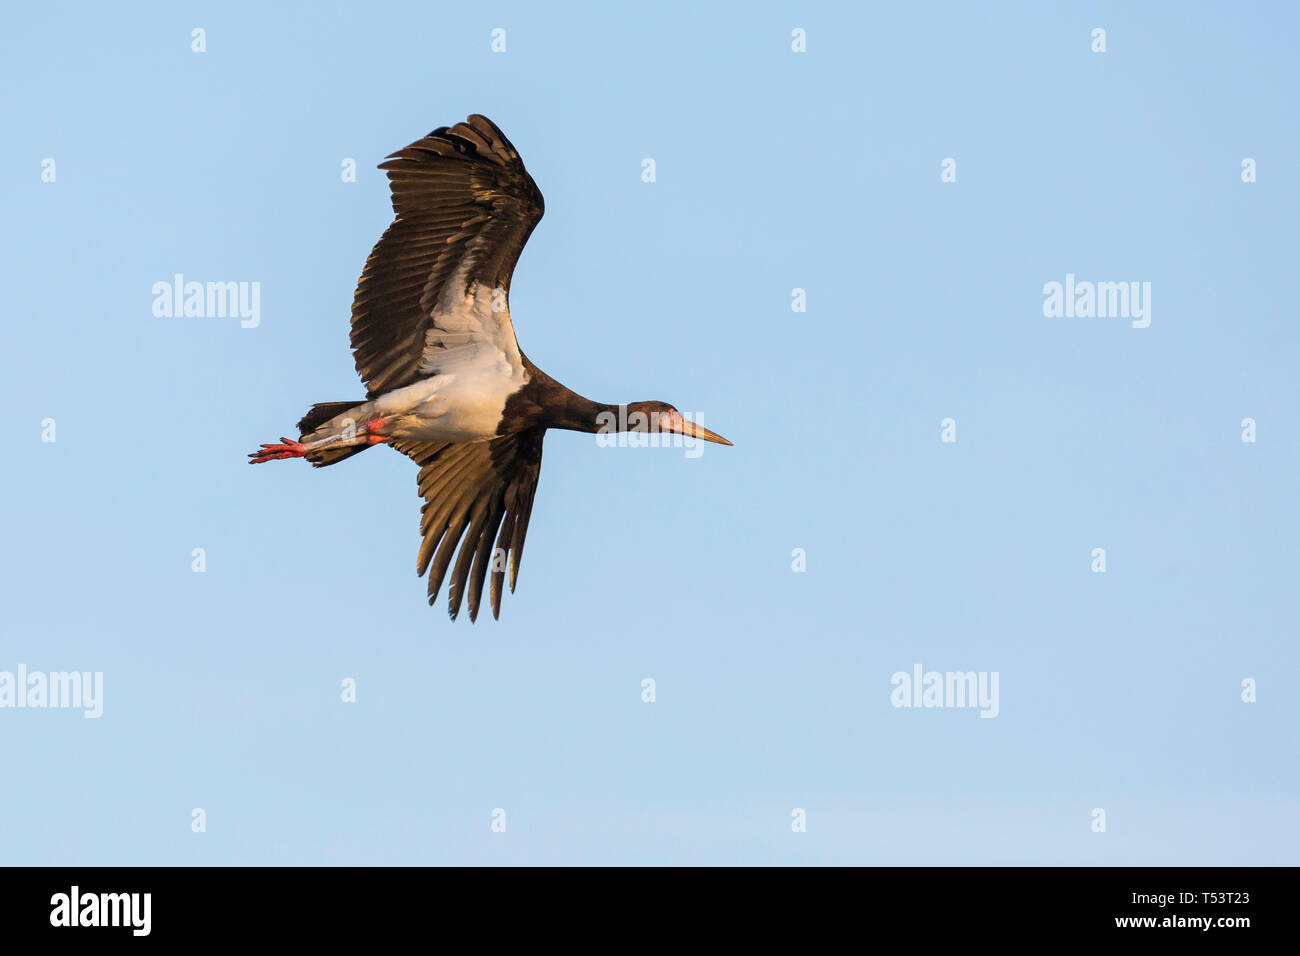 A single Black Stork flying in warm early morning light, close view from beneath, Ol Pejeta Conservancy, Laikipia, Kenya, Africa Stock Photo